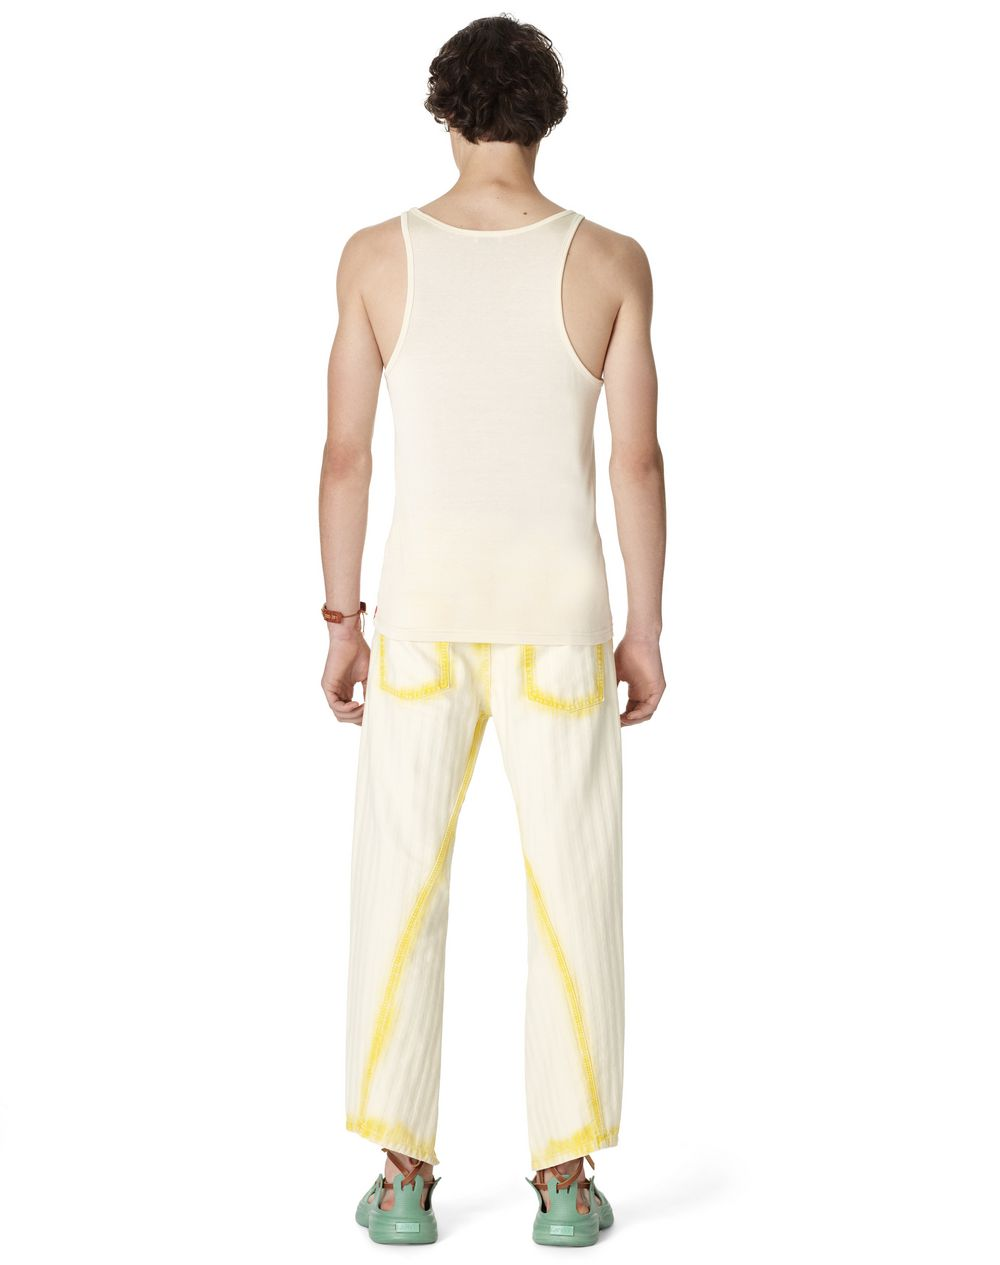 FULL SUN TANK TOP - Lanvin